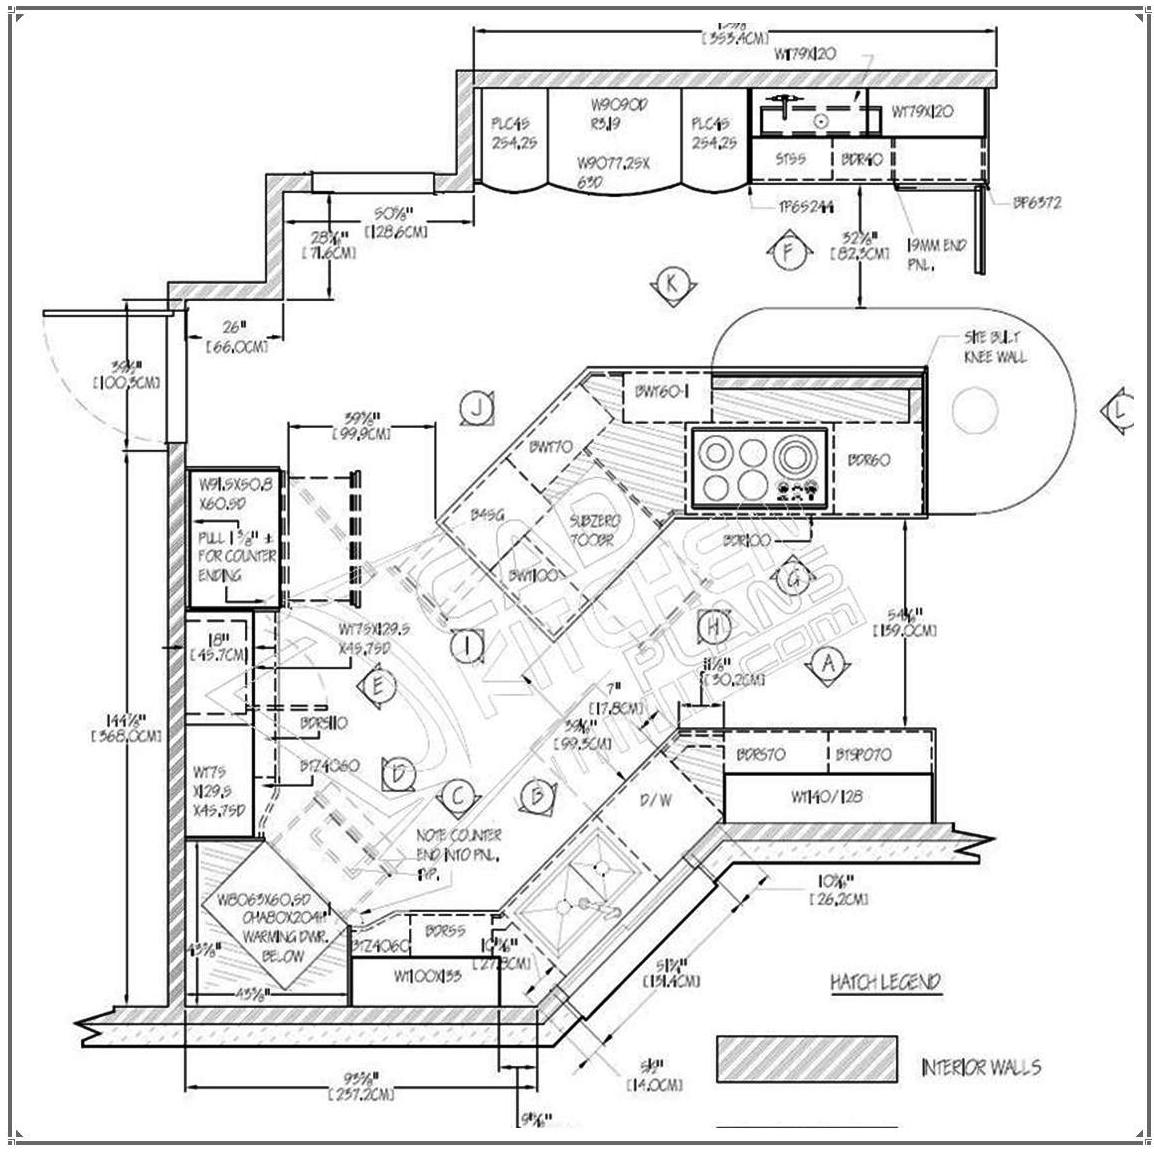 House site plan drawing at free for for Standard house plans free